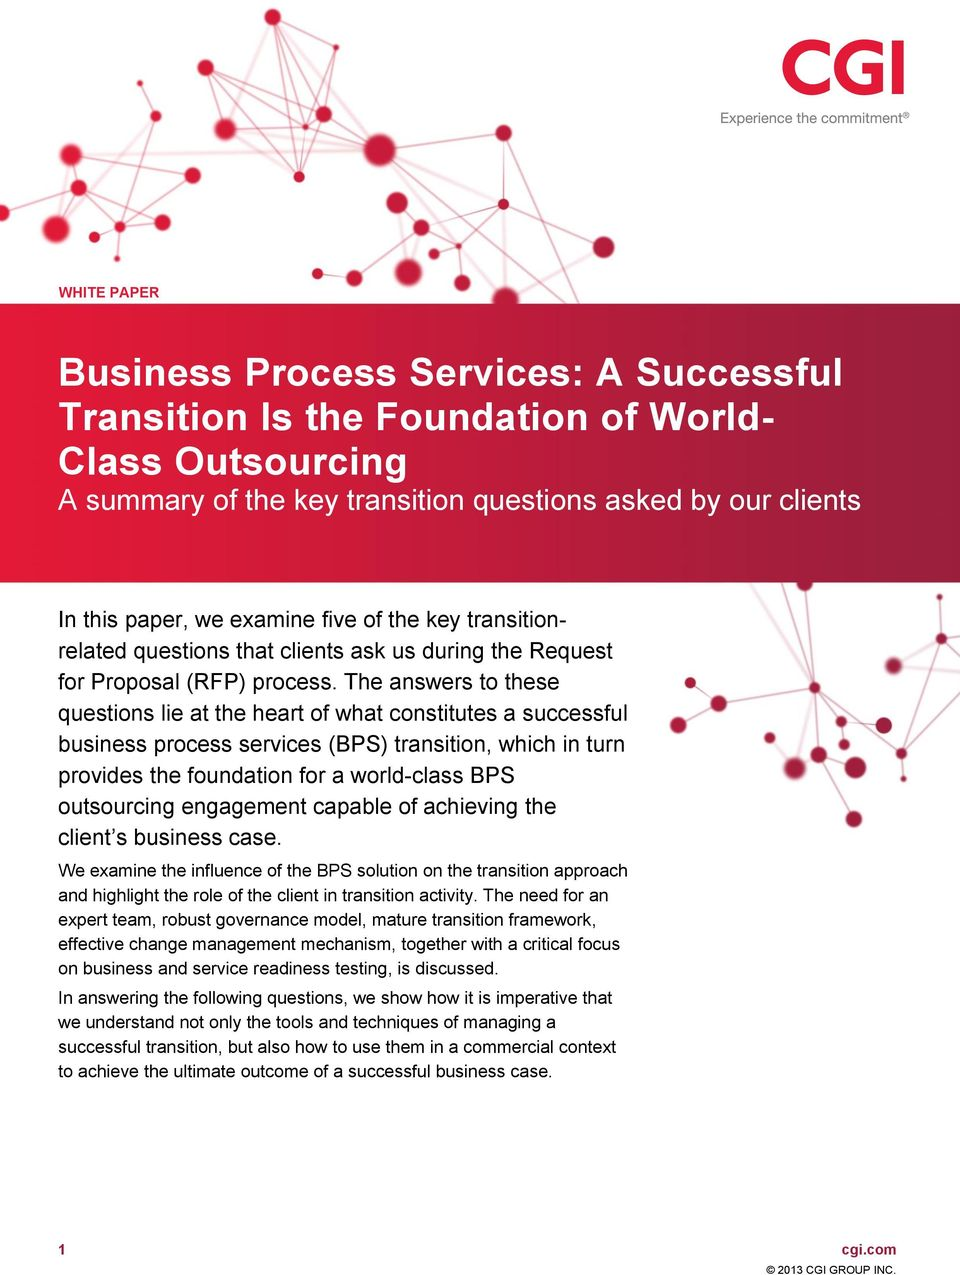 The answers to these questions lie at the heart of what constitutes a successful business process services (BPS) transition, which in turn provides the foundation for a world-class BPS outsourcing